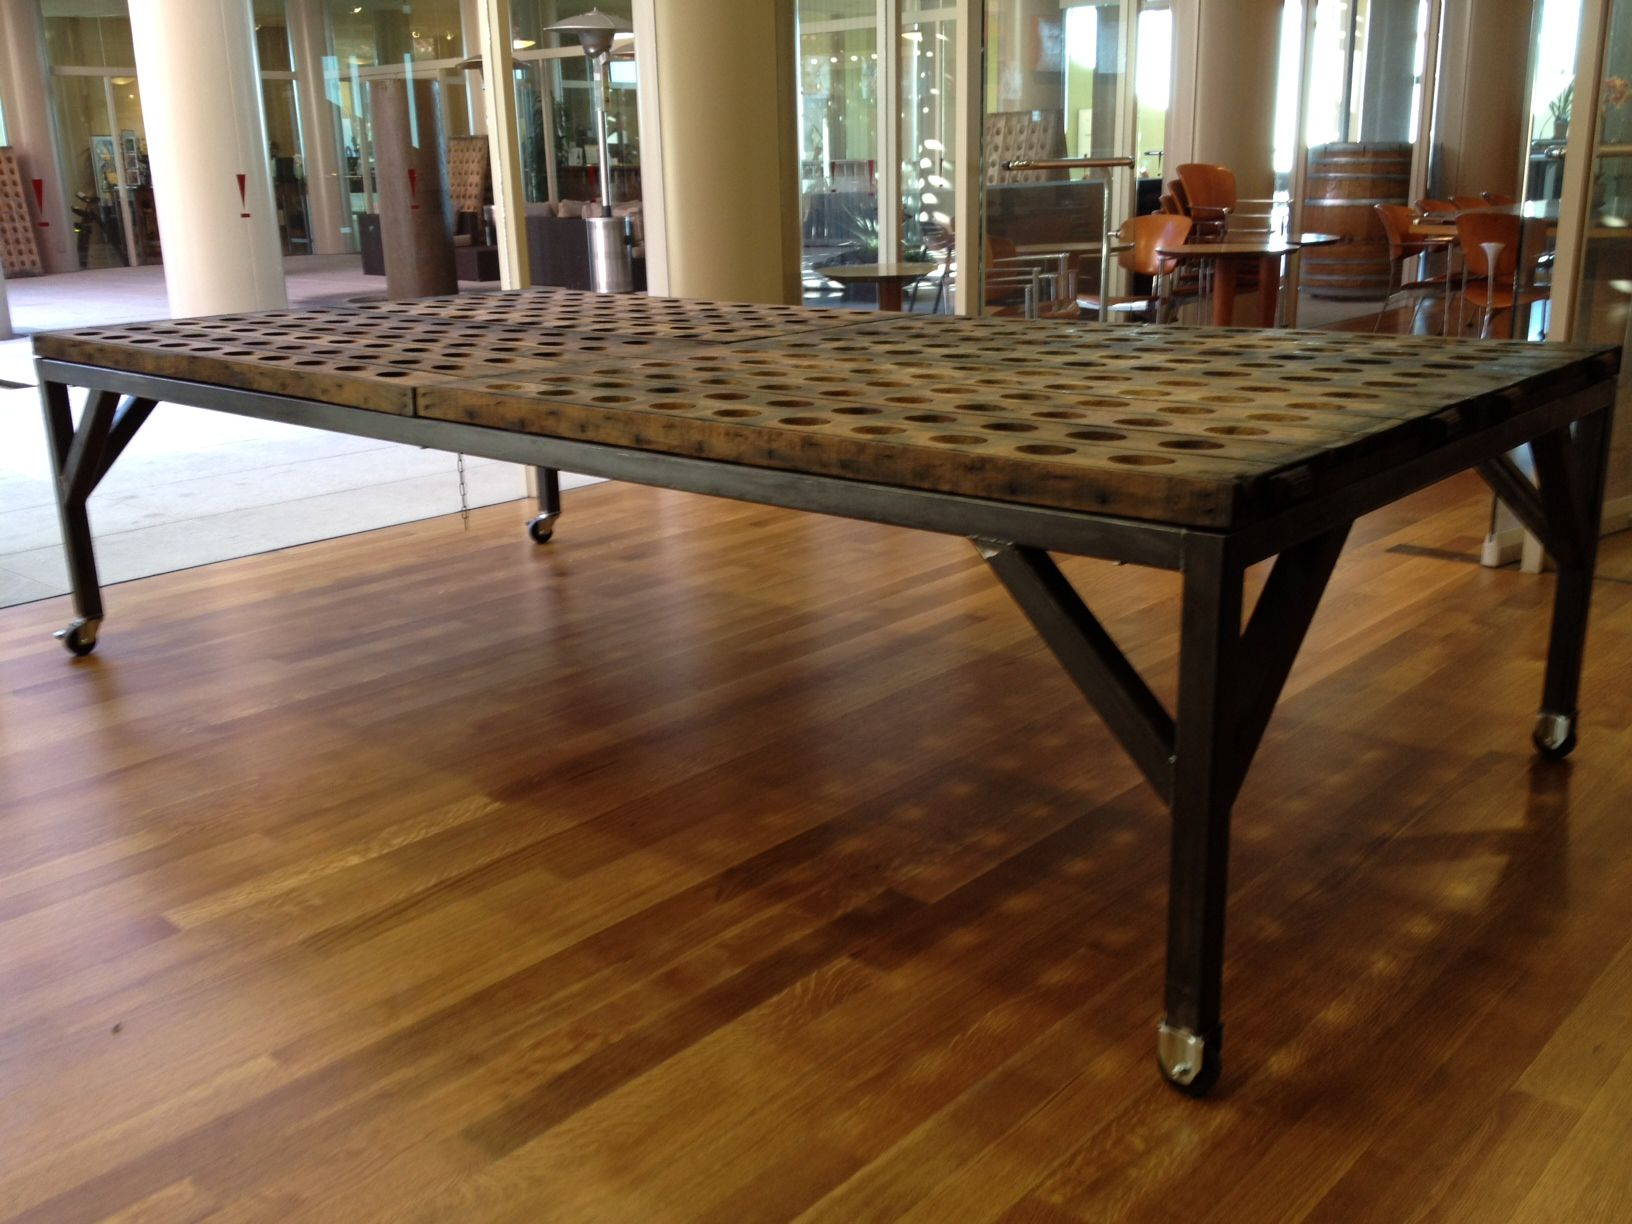 Custom Fabricated Metal Table Base | Made For Artesa Winery By Blacku0027s  Farmwood | Napa